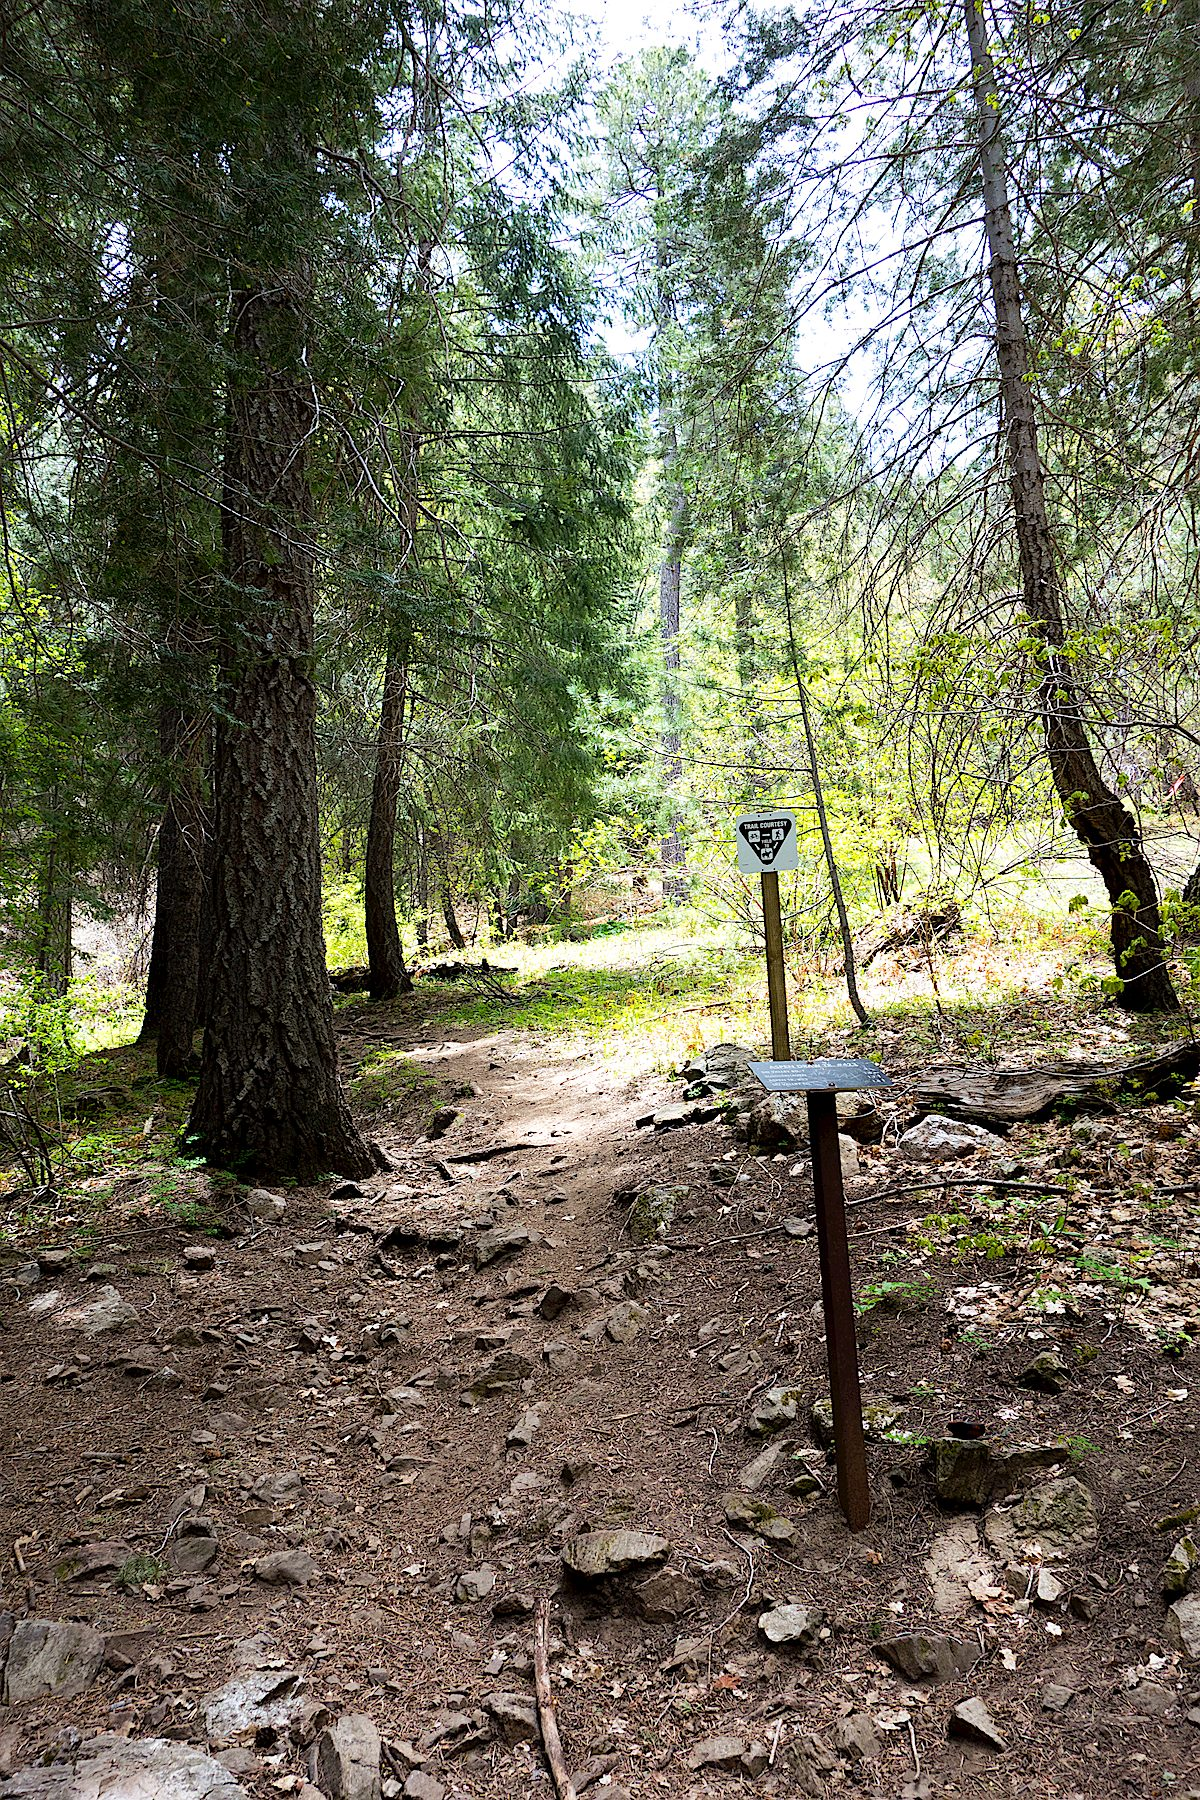 Trail sign at the junction for the trail to Ski Run Road. May 2014.